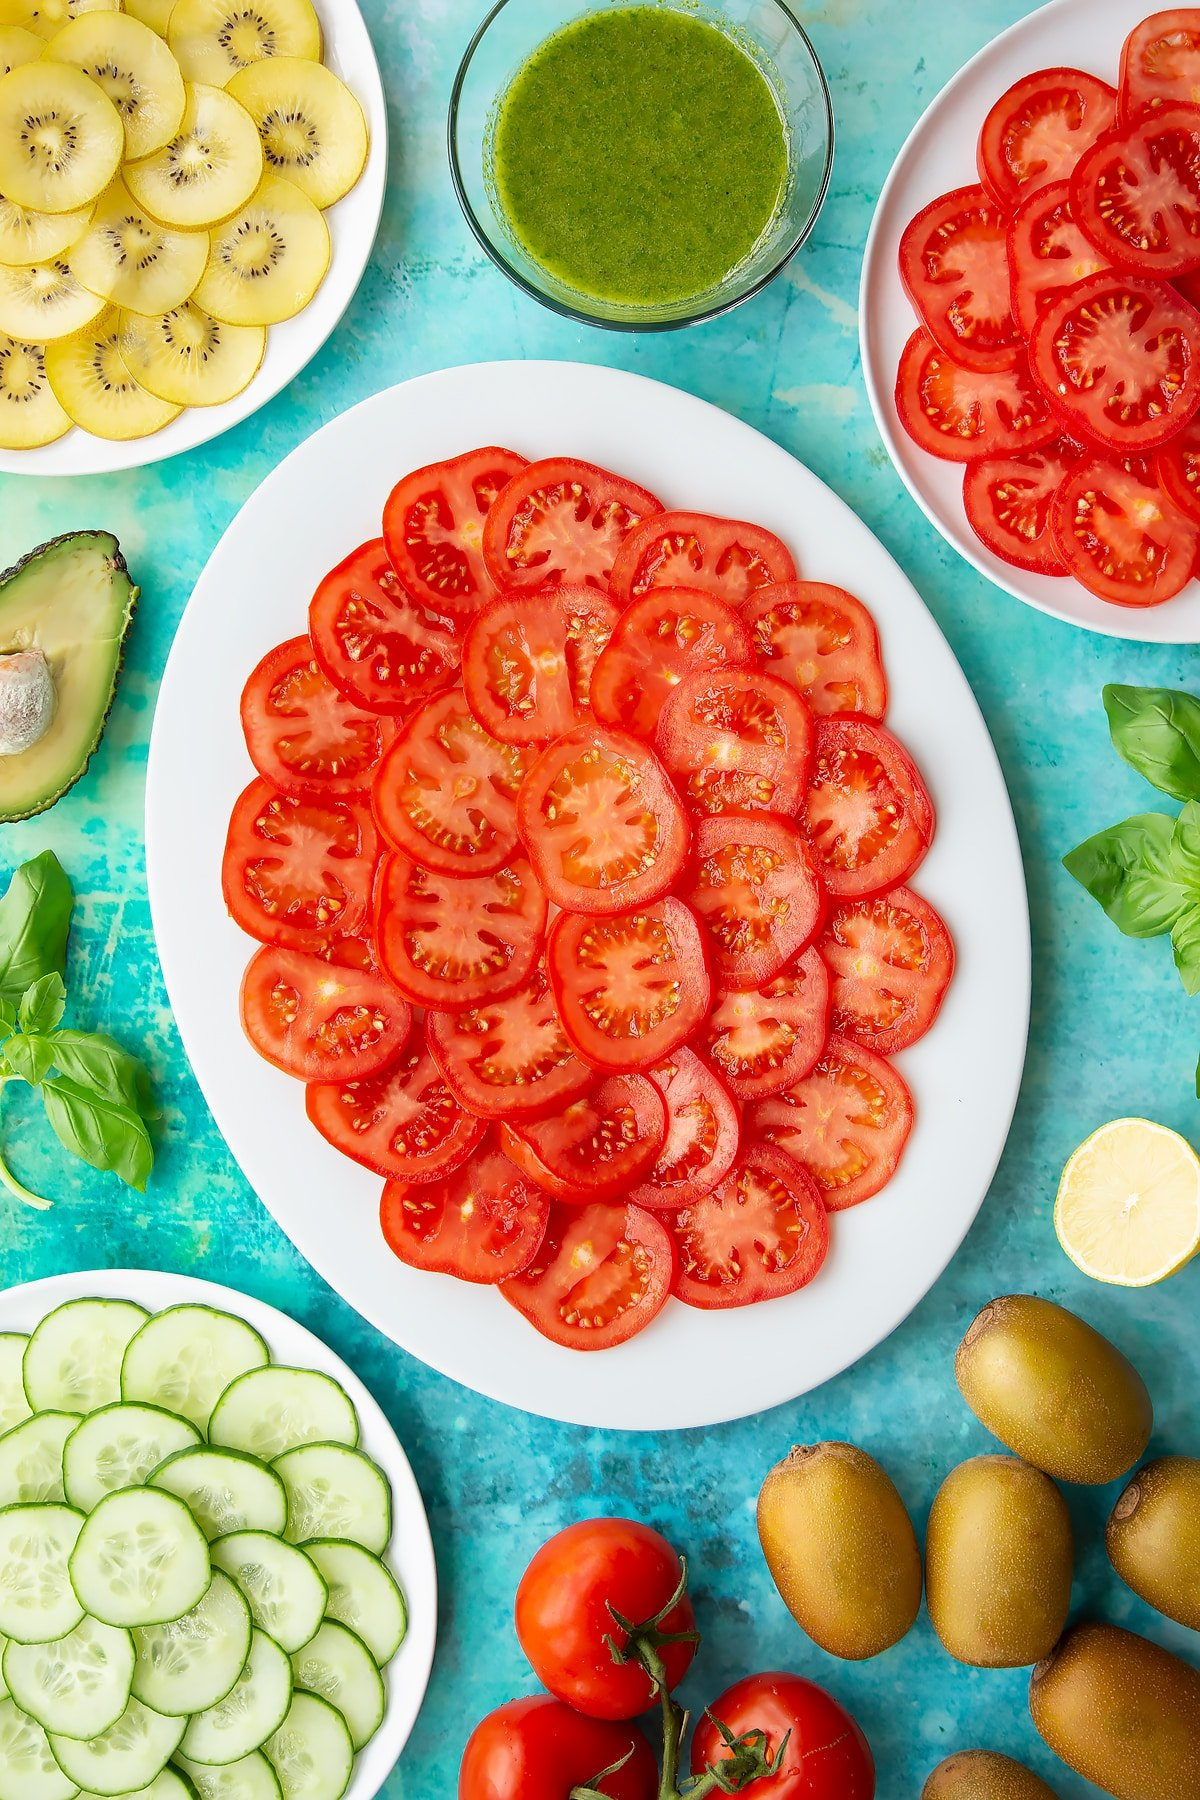 Sliced tomatoes on a white oval plate. Ingredients to make a kiwi feta salad surround the platter.